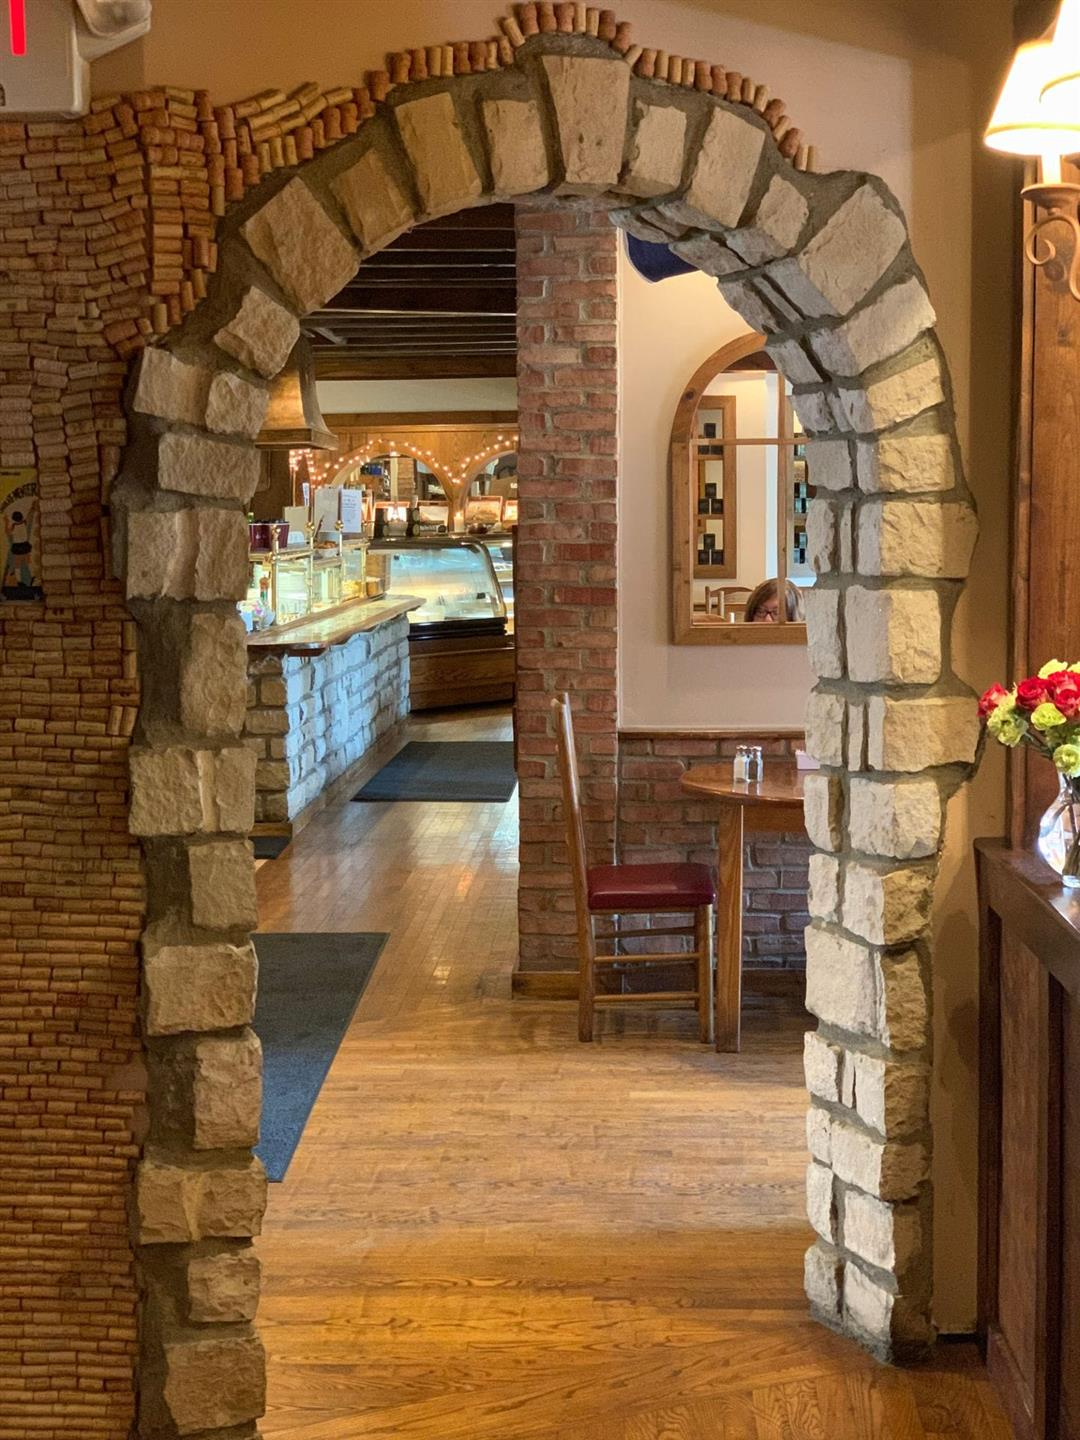 Brick archway entrance into dining room